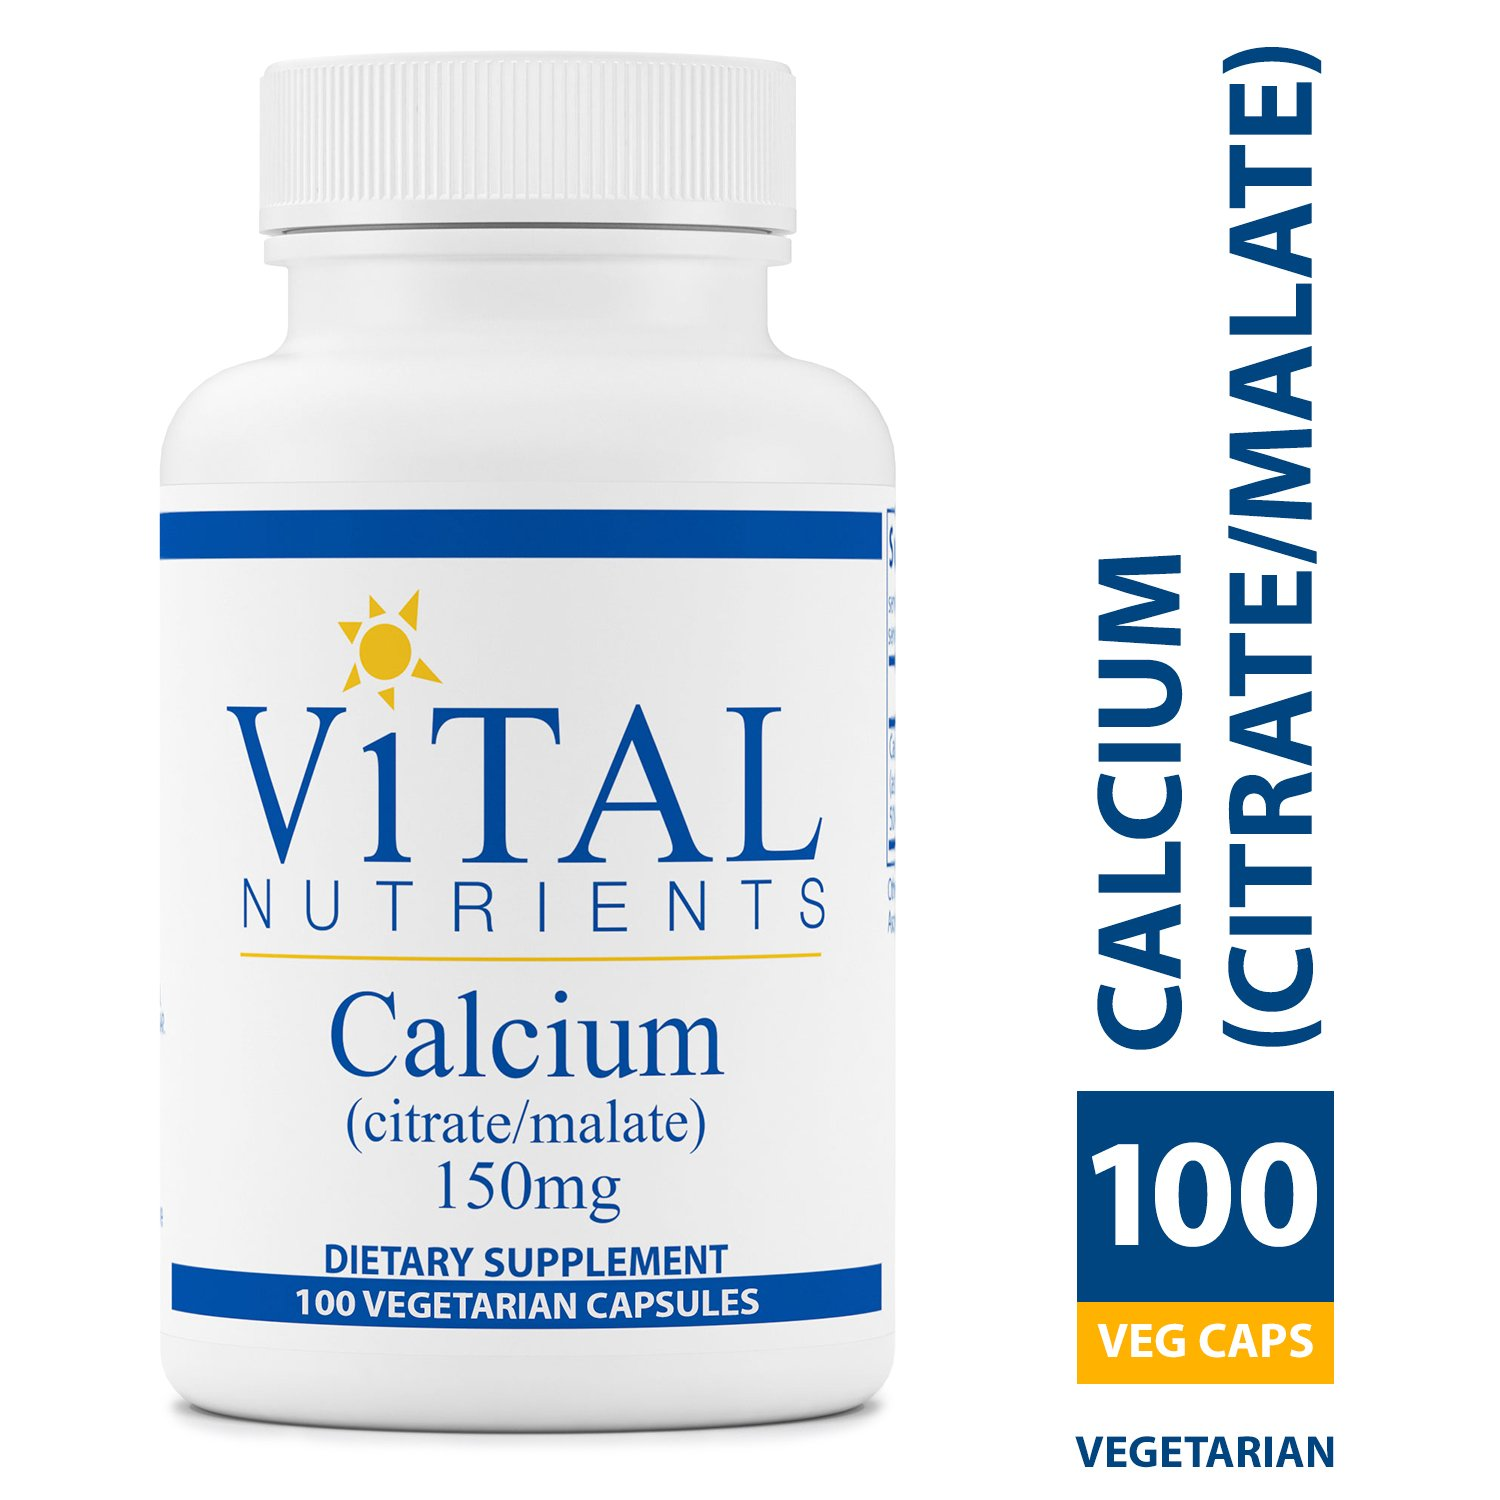 Vital Nutrients - Calcium (Citrate/Malate) 150 mg - Most Bioavailable Form of Calcium - 100 Vegetarian Capsules per Bottle